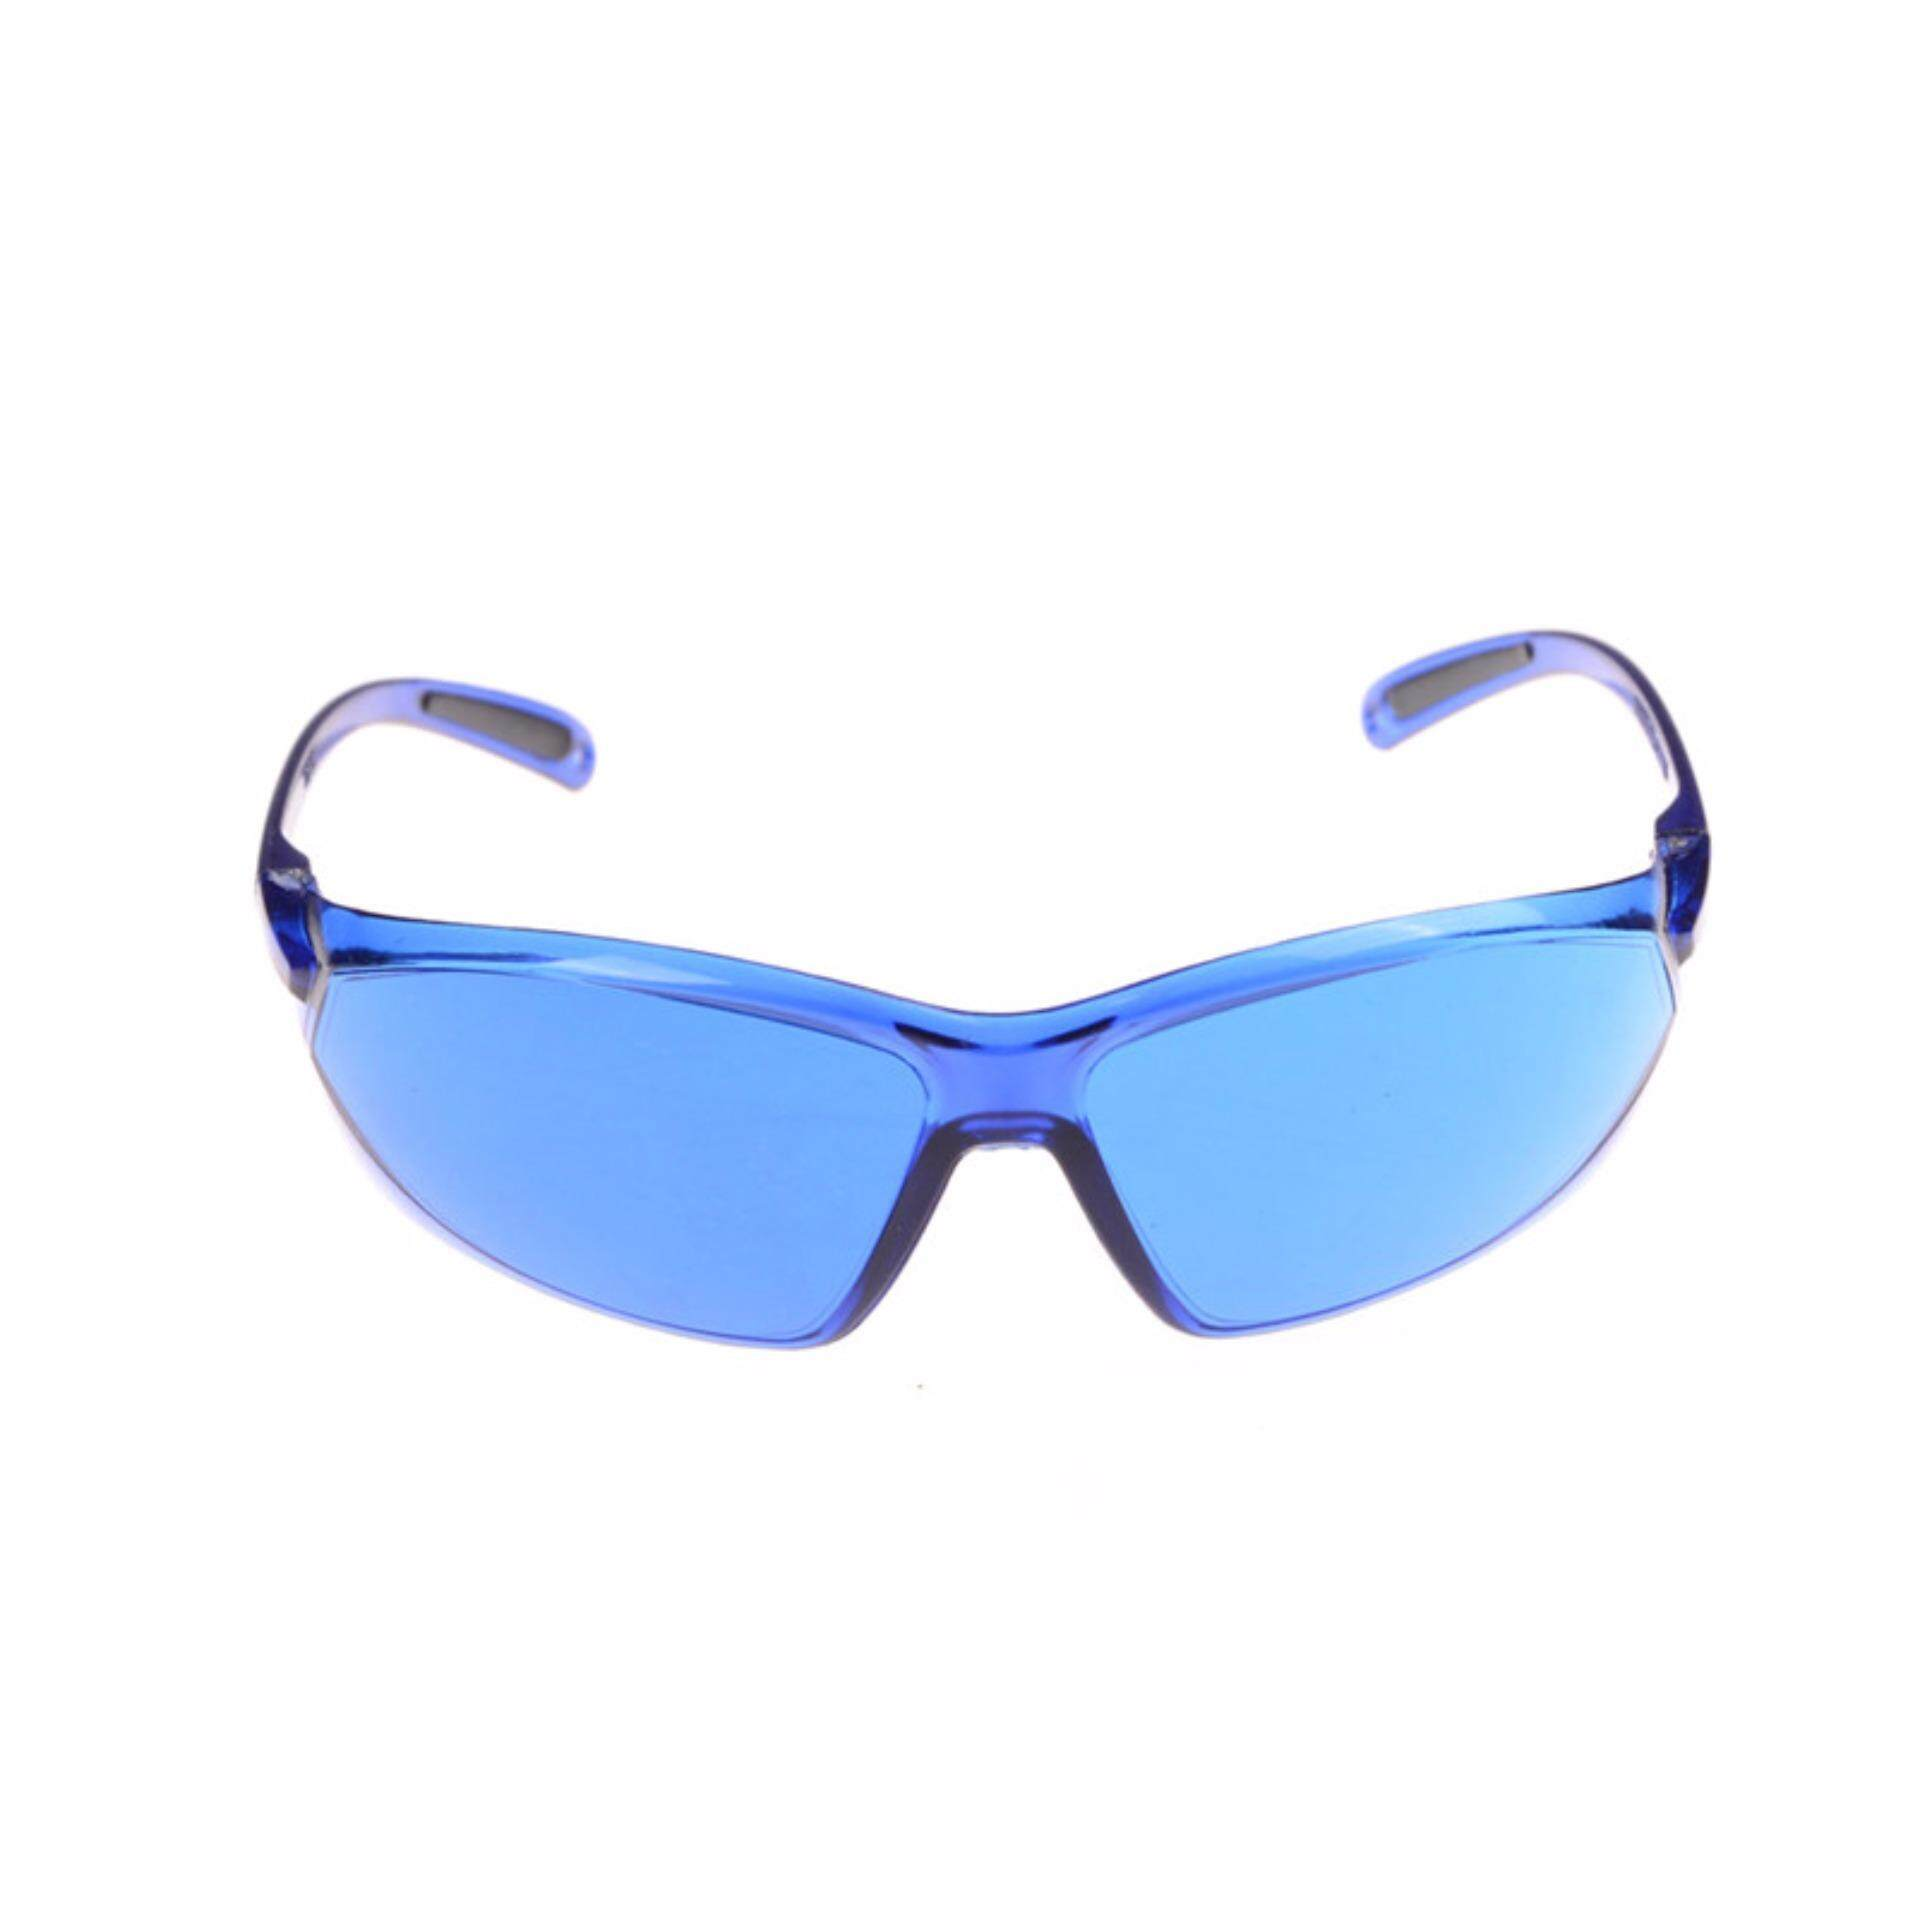 Ipl Beauty Protective Glasses Red Laser Hoton Color Light Safety Goggles 200-1200nm Wide Spectrum Of Continuous Absorption By Blossom Mall.